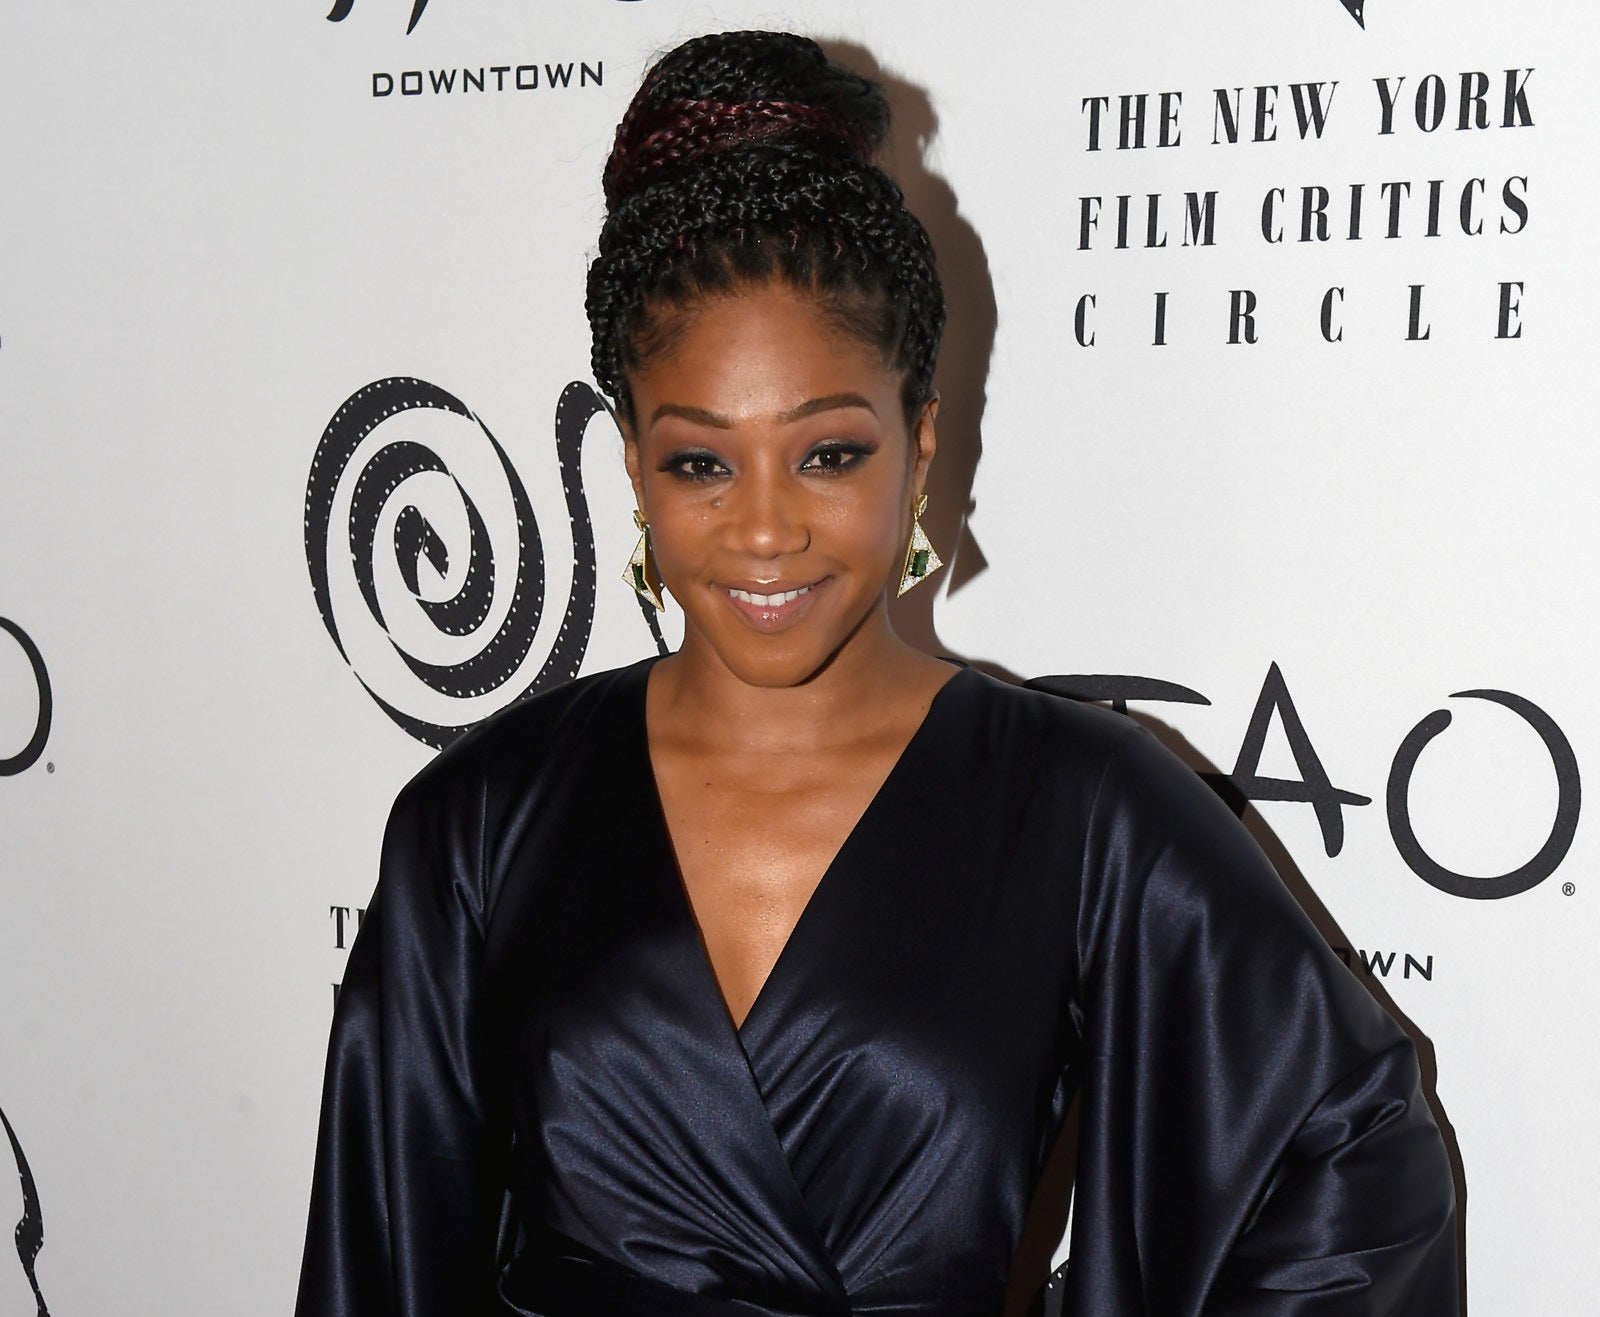 Tiffany Haddish is doing what any of us would do if we became famous: trying to meet as many celebrities as possible.